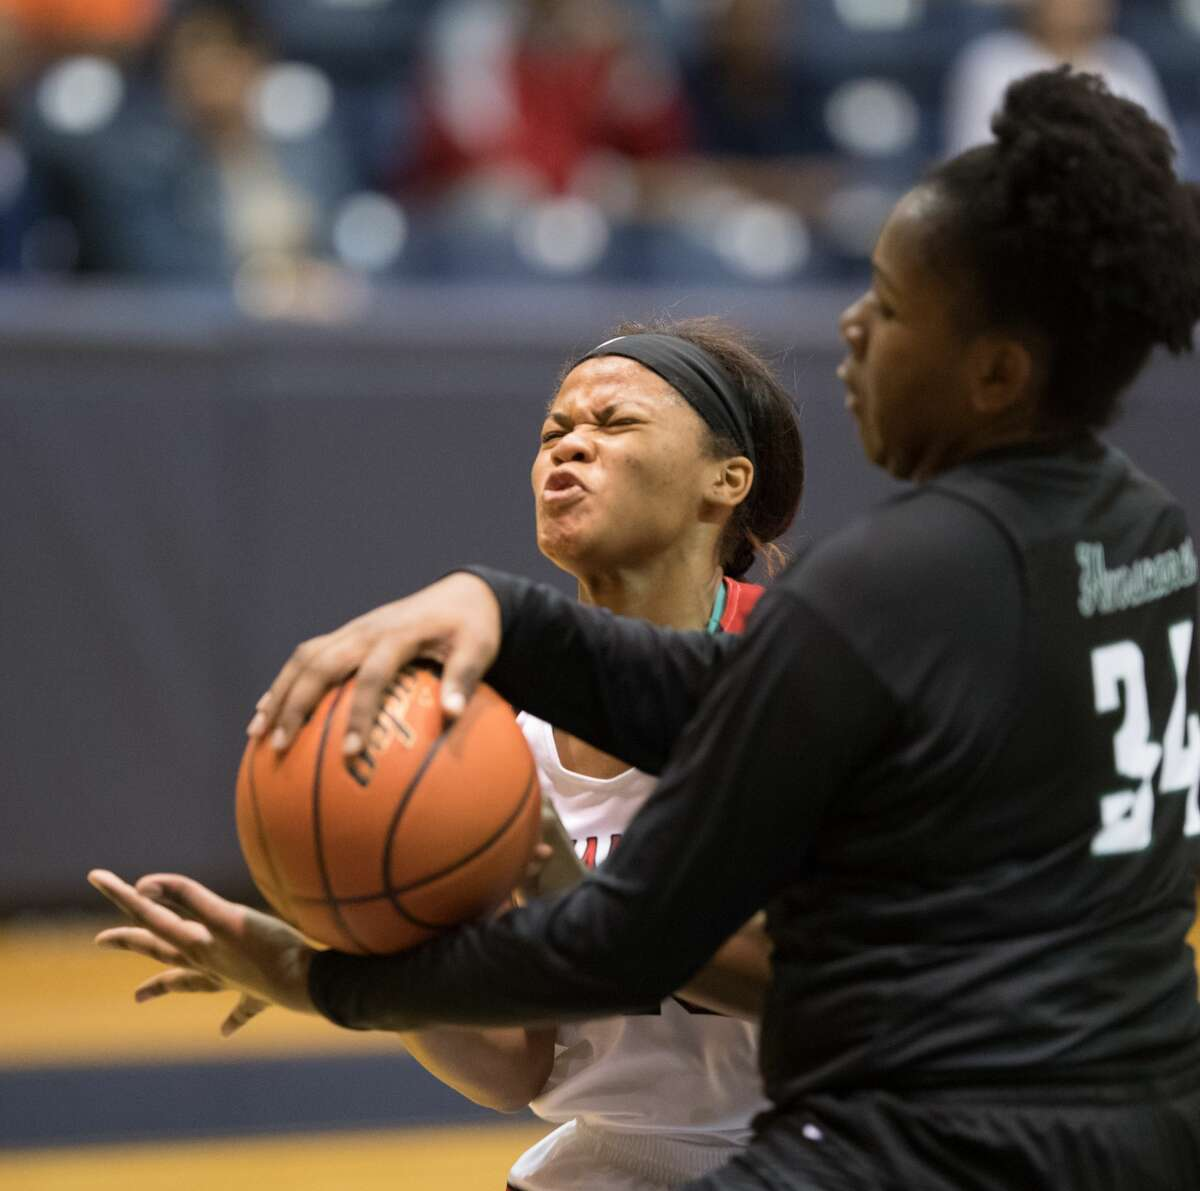 Rashonda Schaeffer (13) of the Langham Creek Lobos grimaces as she runs into Winnie Kuimi (34) of the Hightower Hurricanes in 6A Girls Basketball Area Playoffs on Thursday, February 16, 2017 at the Coleman Coliseum in Houston, Texas.